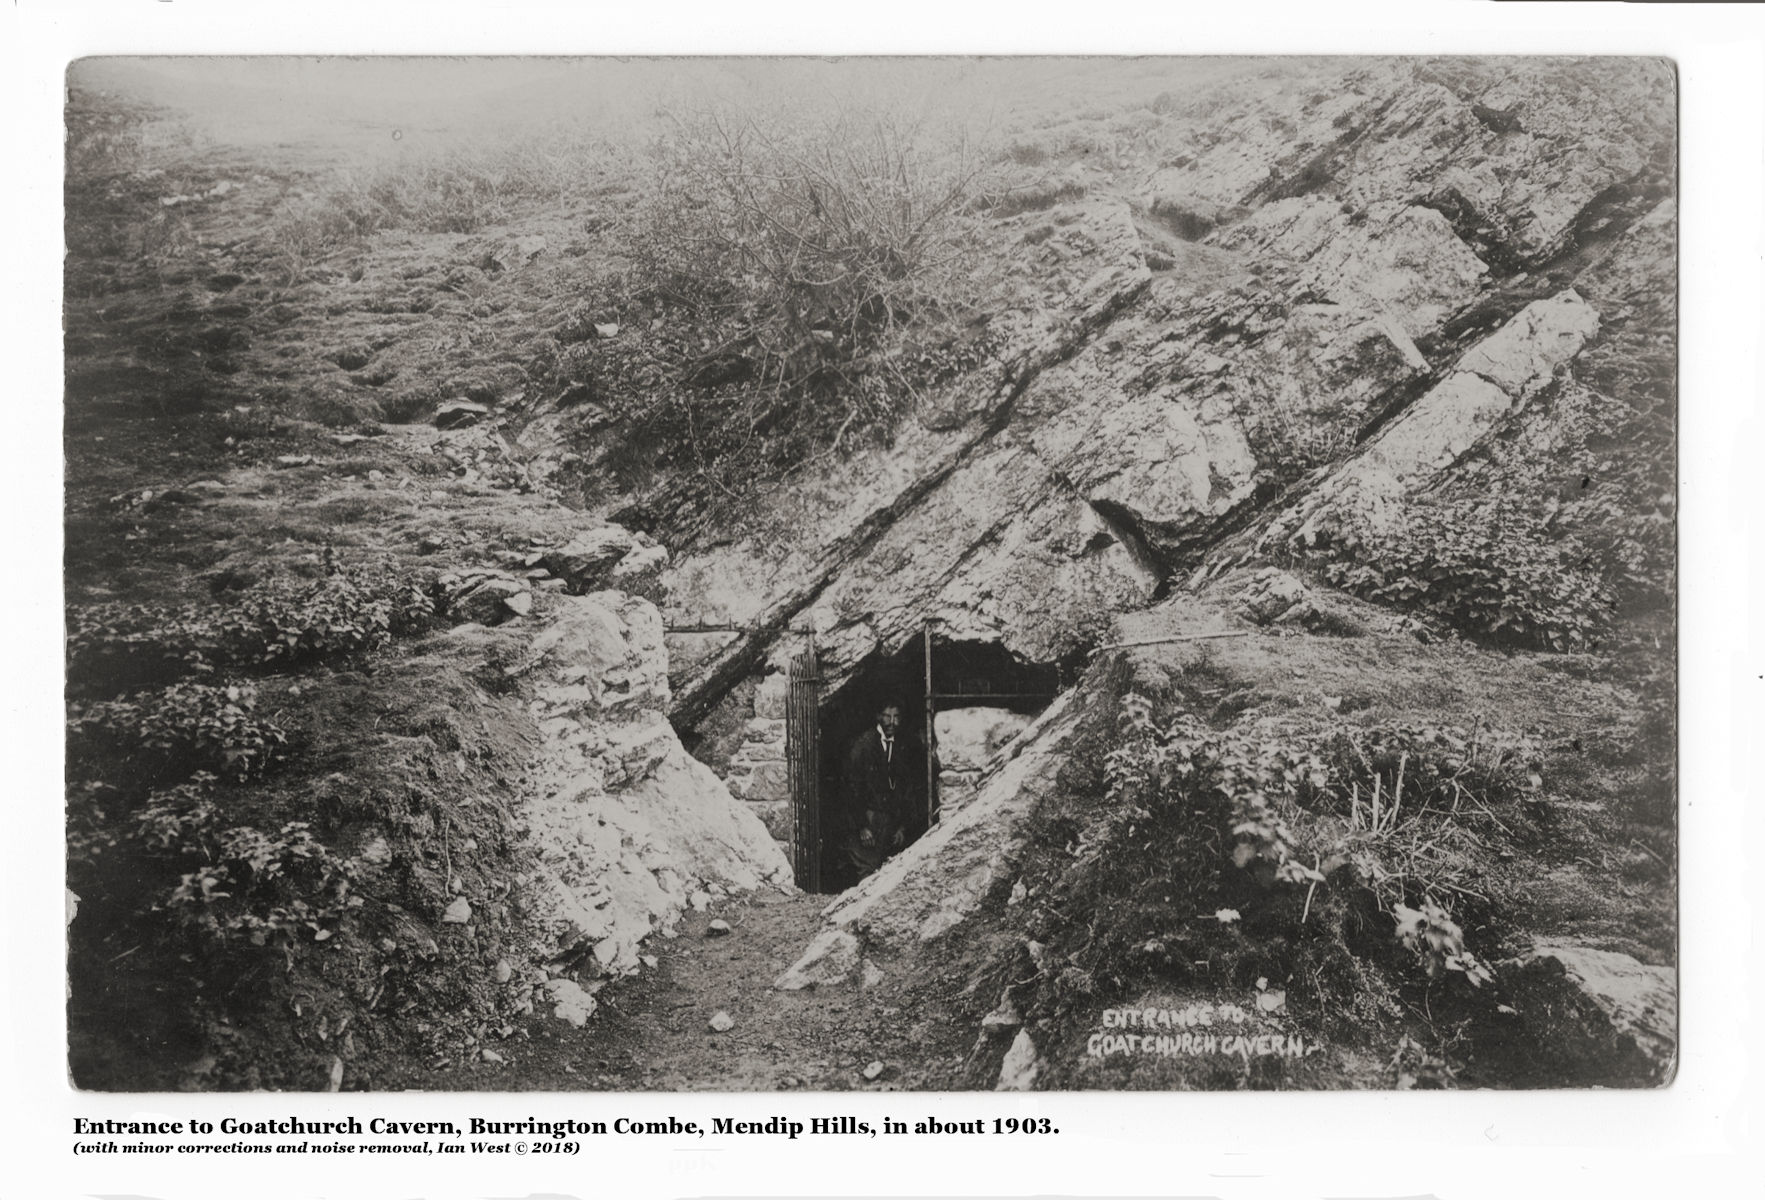 An old photograph of the entrance to Goatchurch Cavern, Burrington Combe, in about 1903, when it was, at least in part, a show-cave